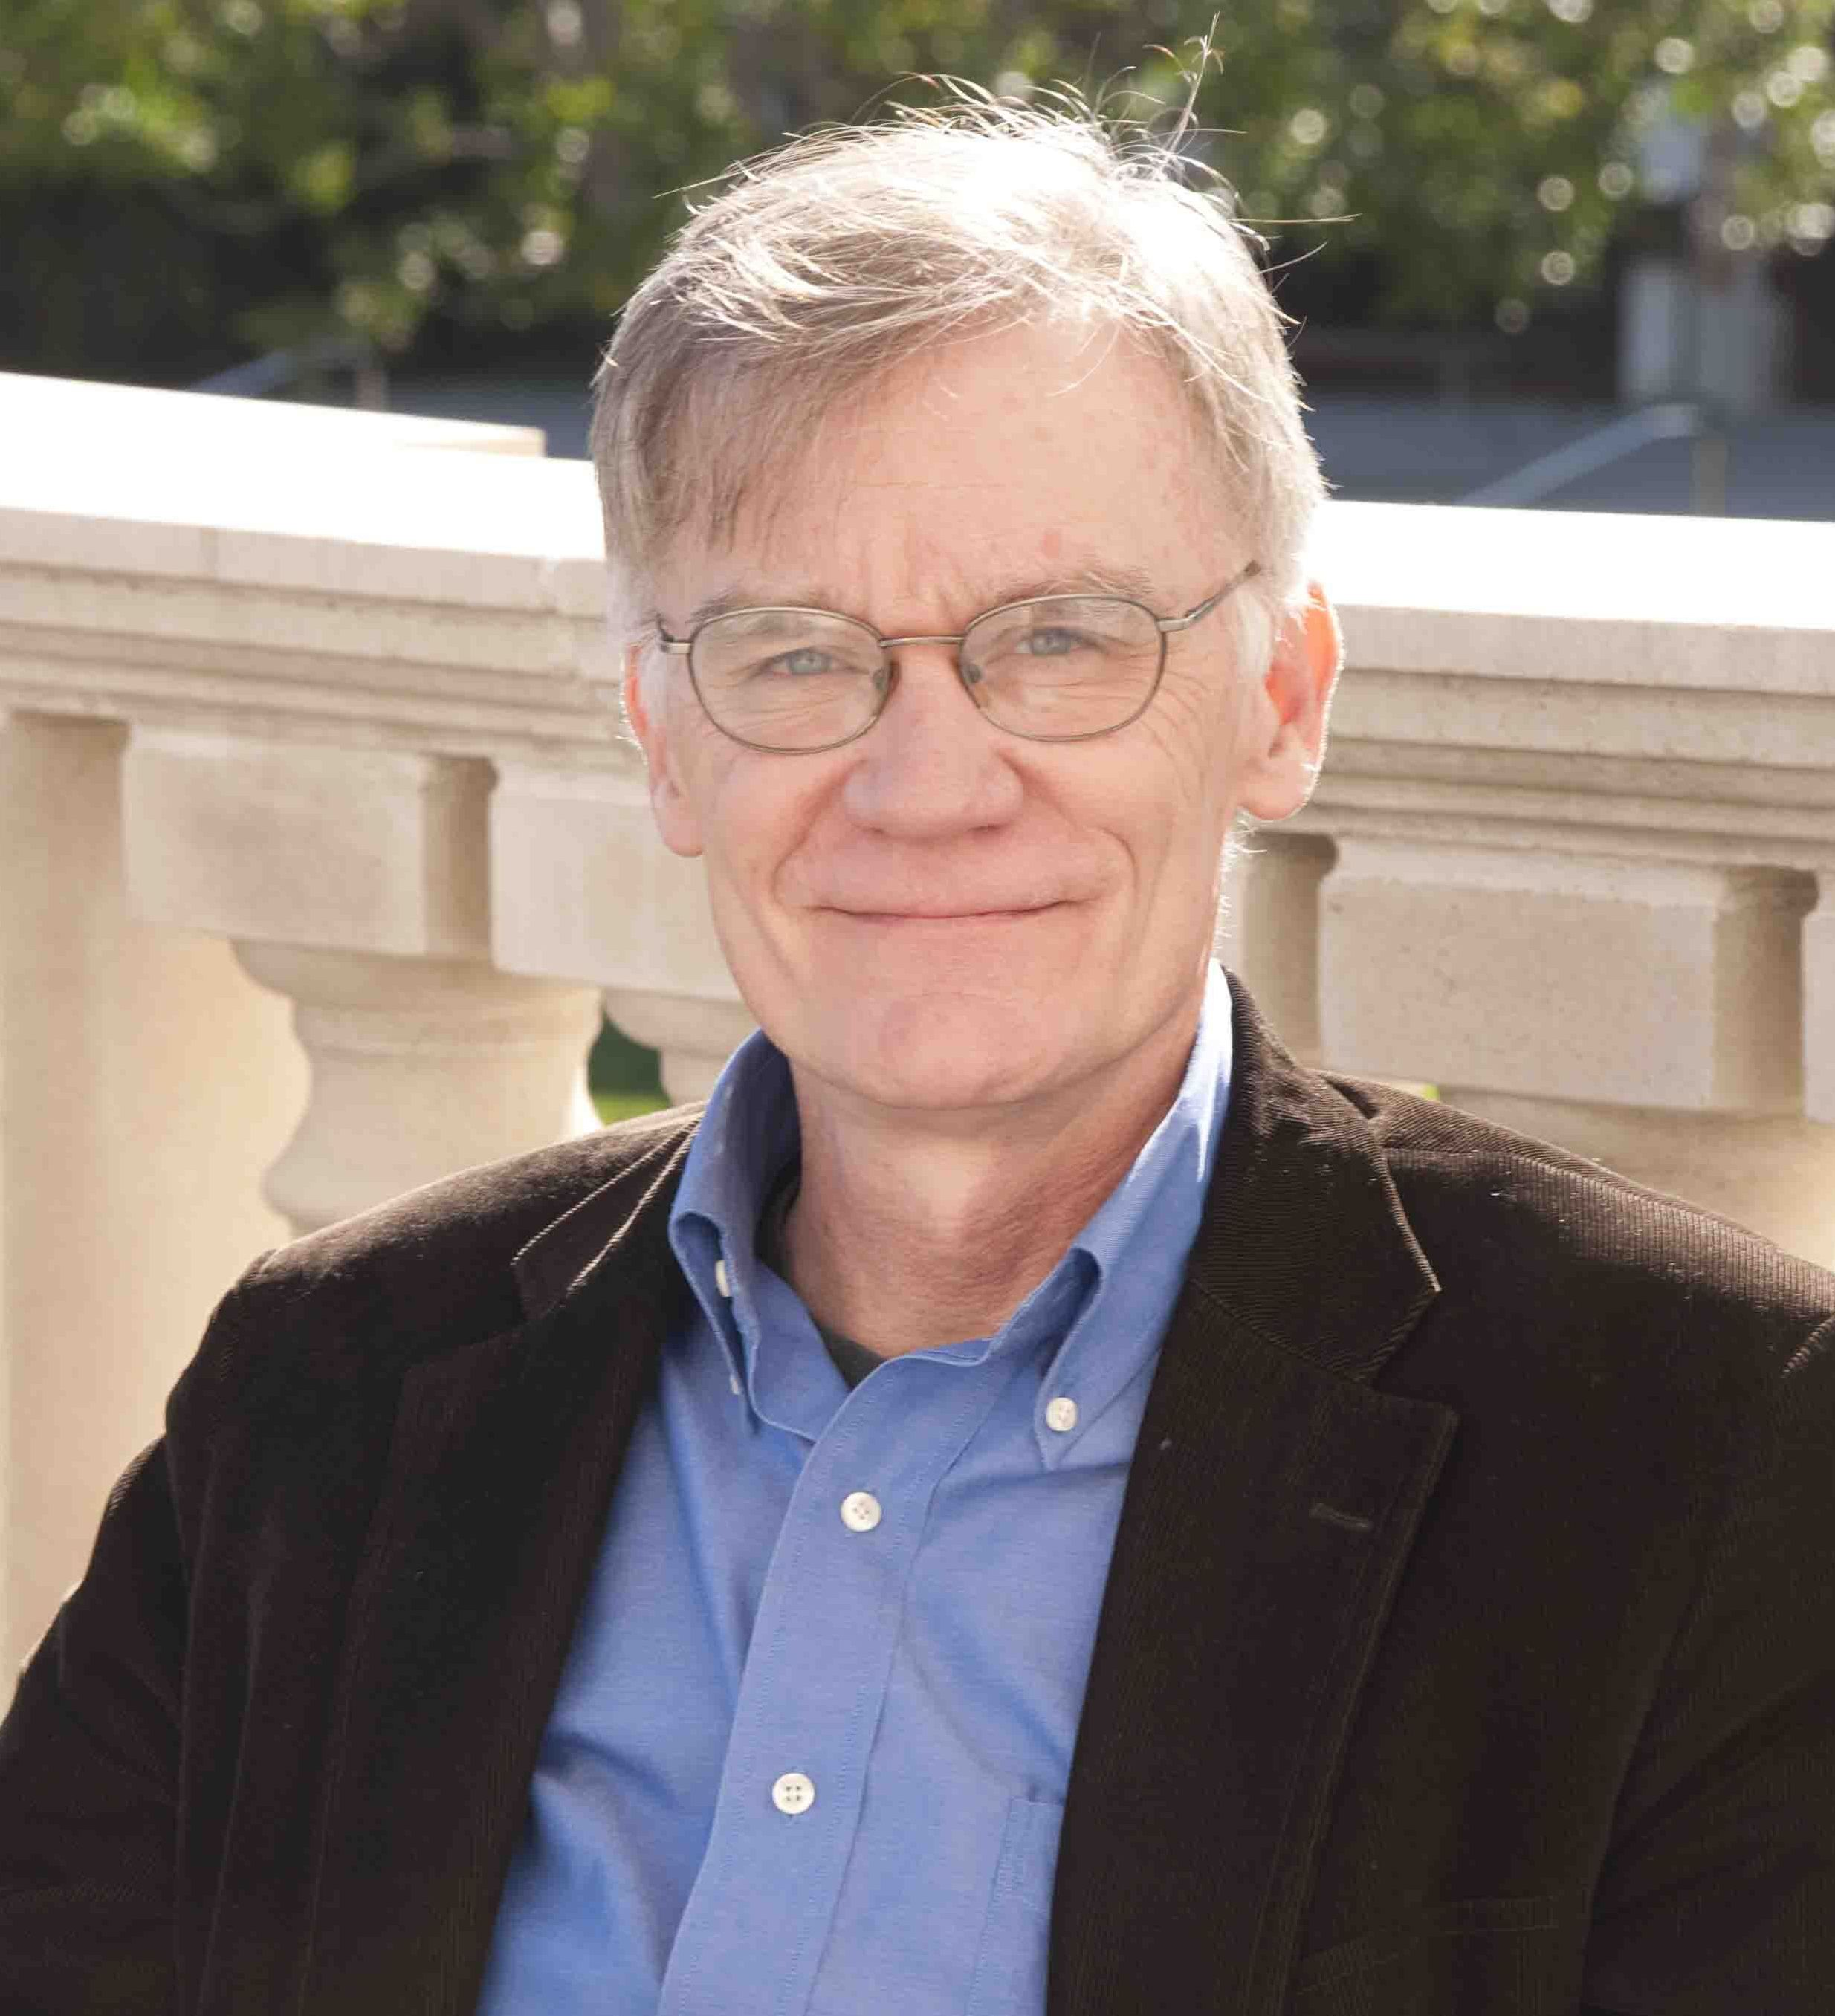 David Blight is the director of the Center for the Study of Slavery, Resistance and Abolition at Yale University. He is the author of American Oracle and A Slave No More.